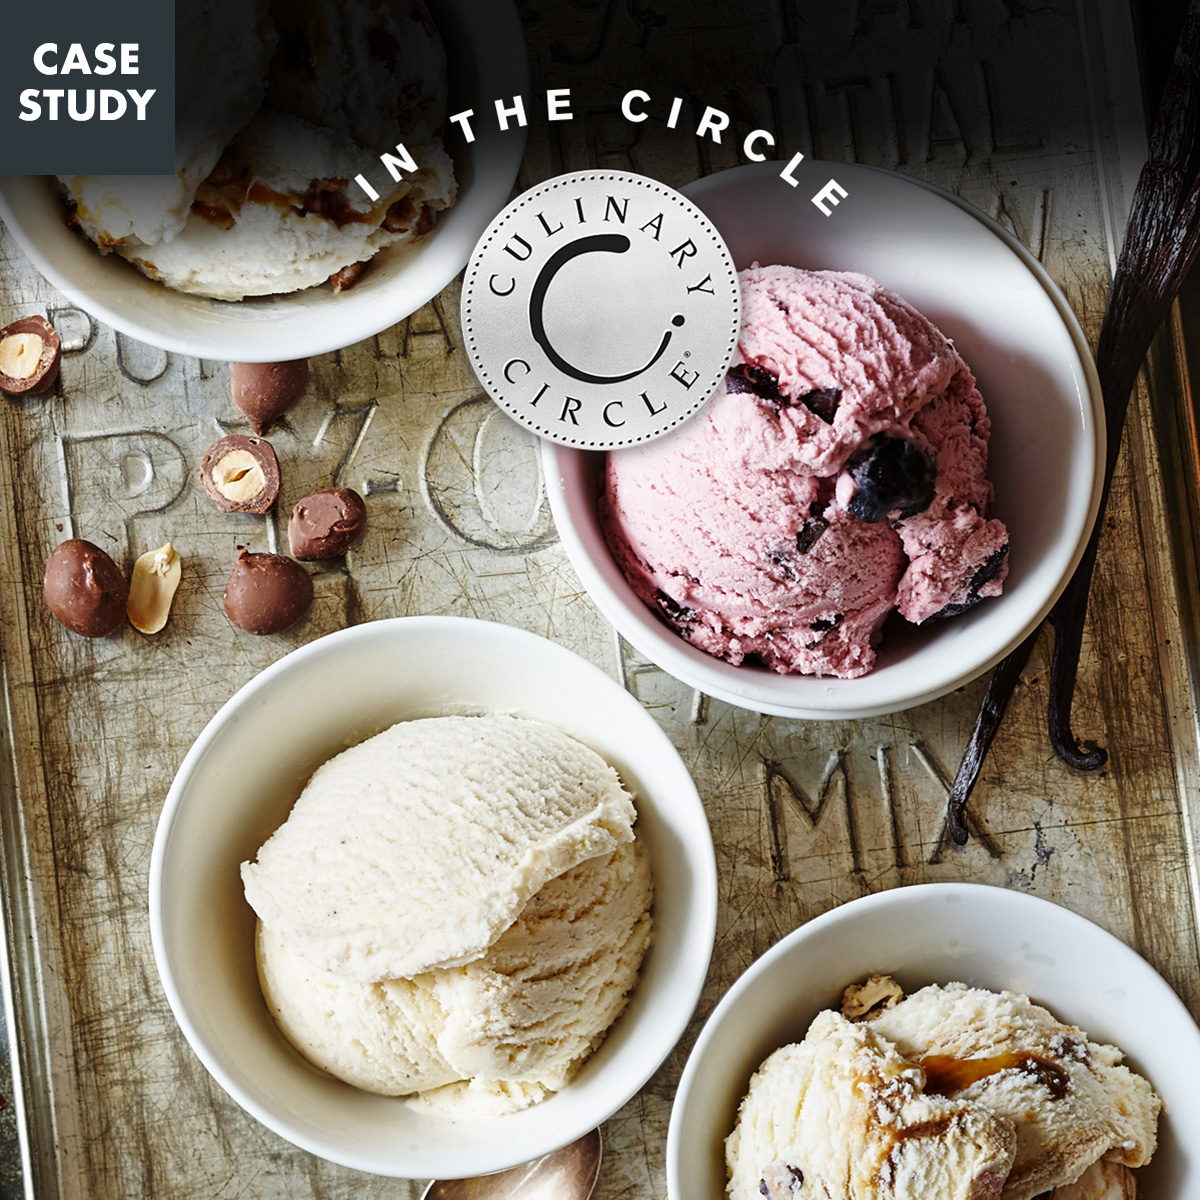 Case Study: In the Circle Culinary Circle